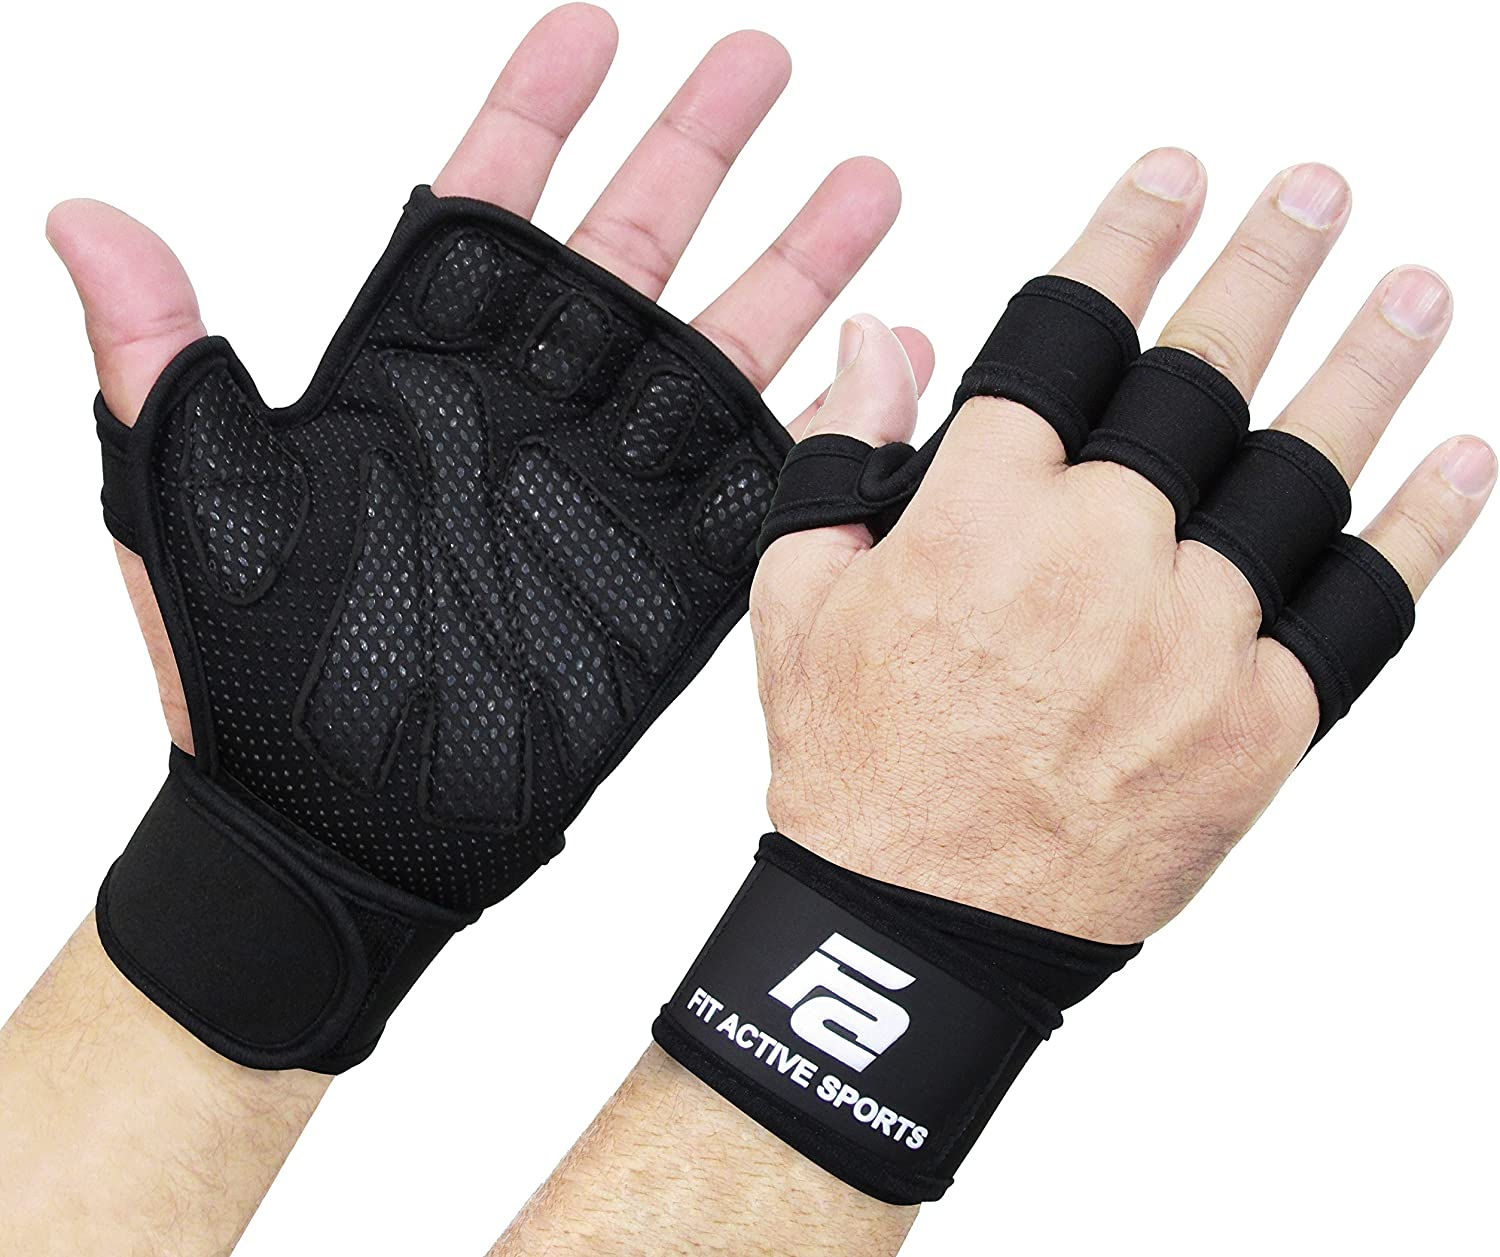 New Ventilated Weight Lifting Gloves with Built-In Wrist Wraps, Full Palm Protection & Extra Grip. Great for Pull Ups, Cross Training, Fitness, WODs & Weightlifting. Suits Men & Women : Sports & Outdoors